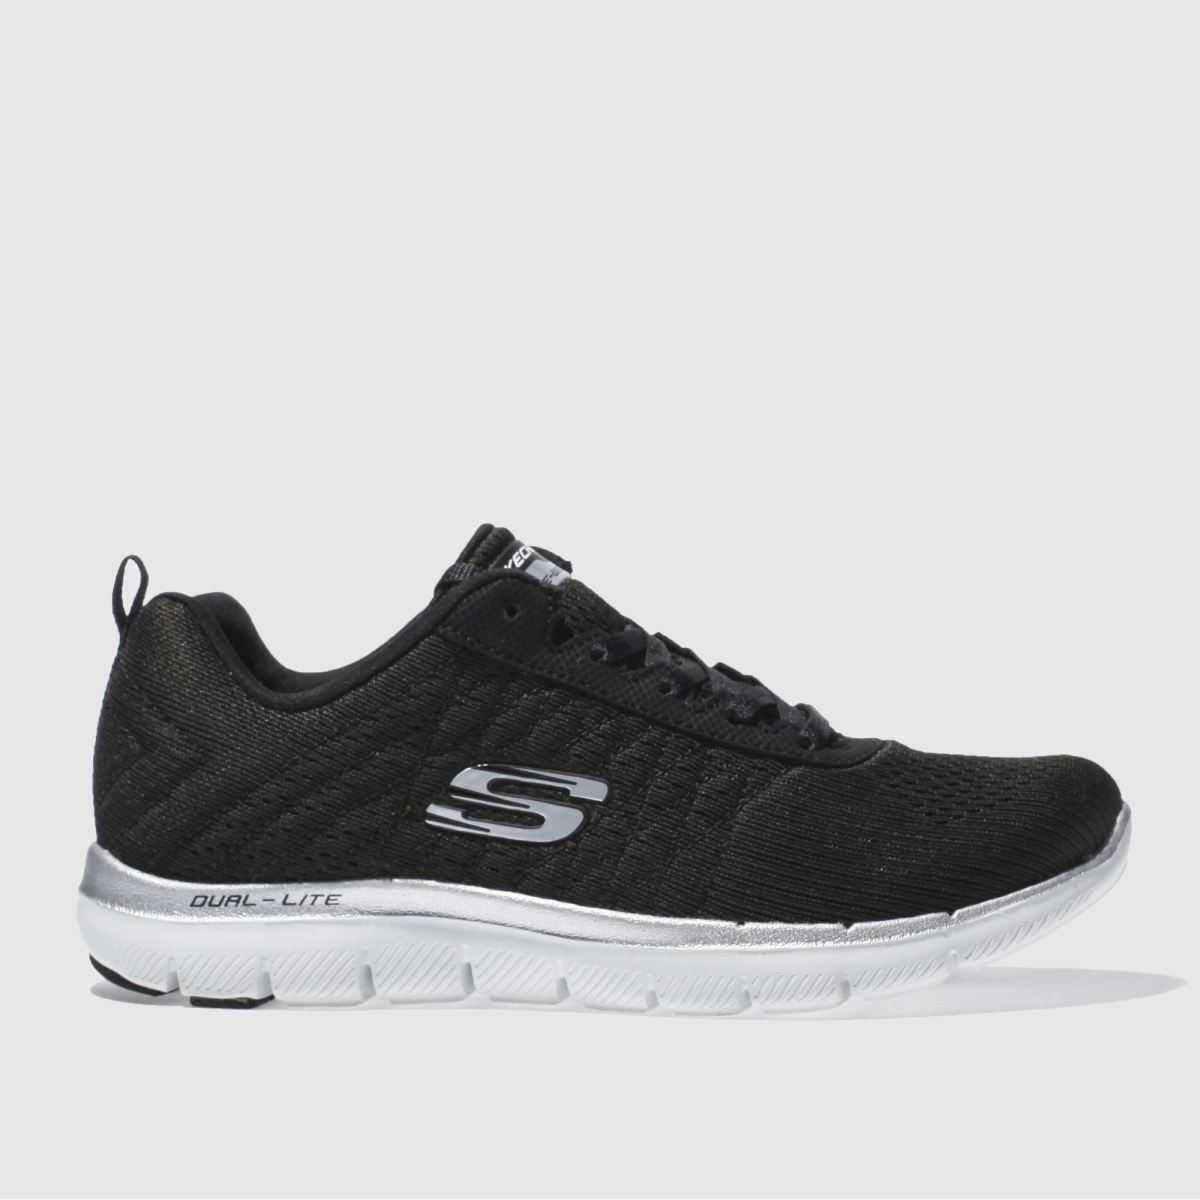 Skechers White Shoes For Sale Philippines